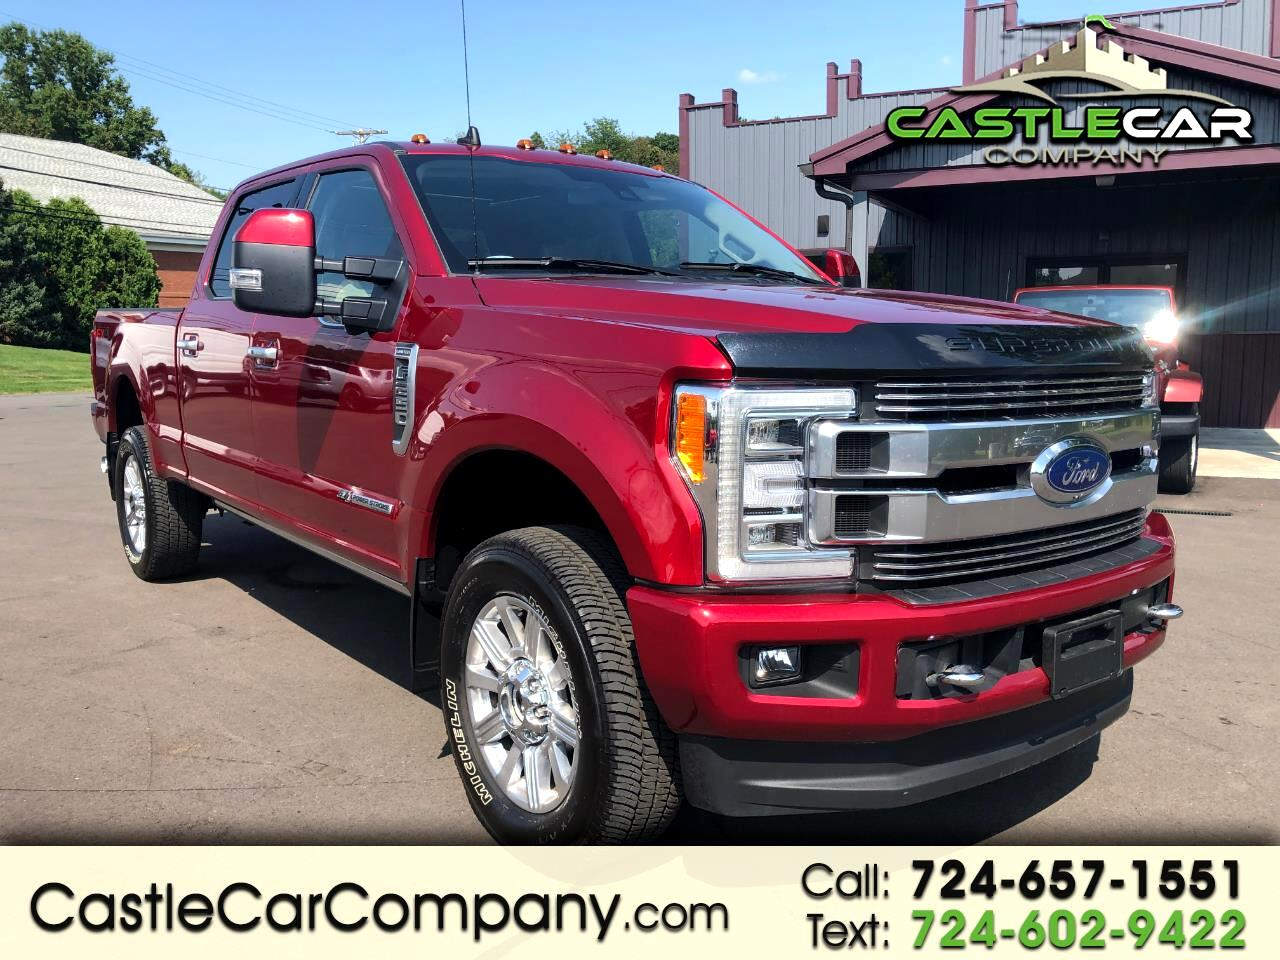 2019 Ford Super Duty F-250 SRW Limited 4WD Crew Cab 6.75' Box